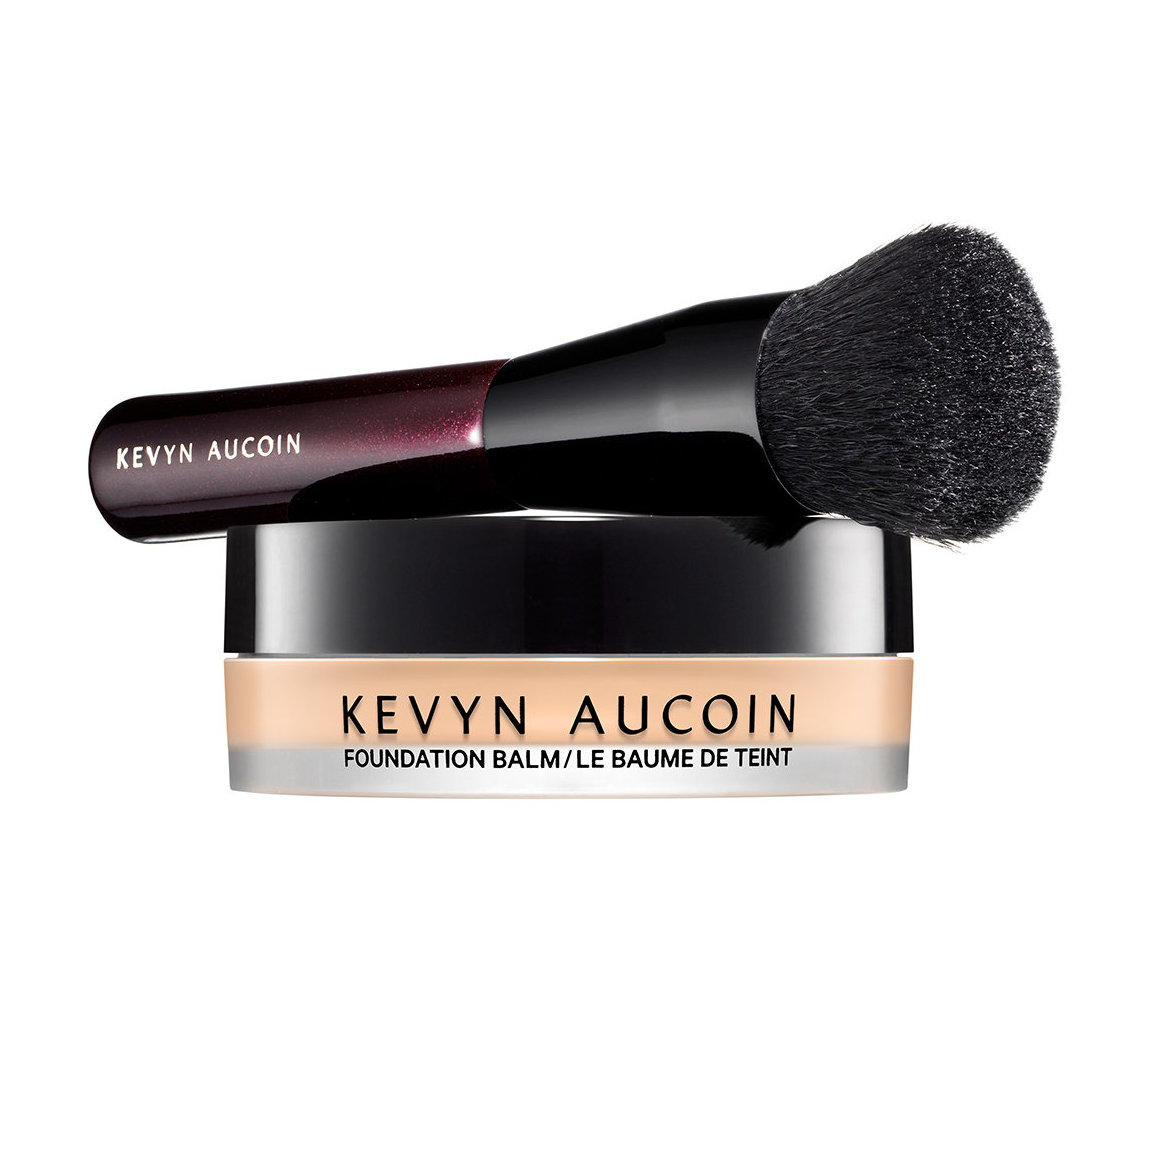 Kevyn Aucoin Foundation Balm FB 01